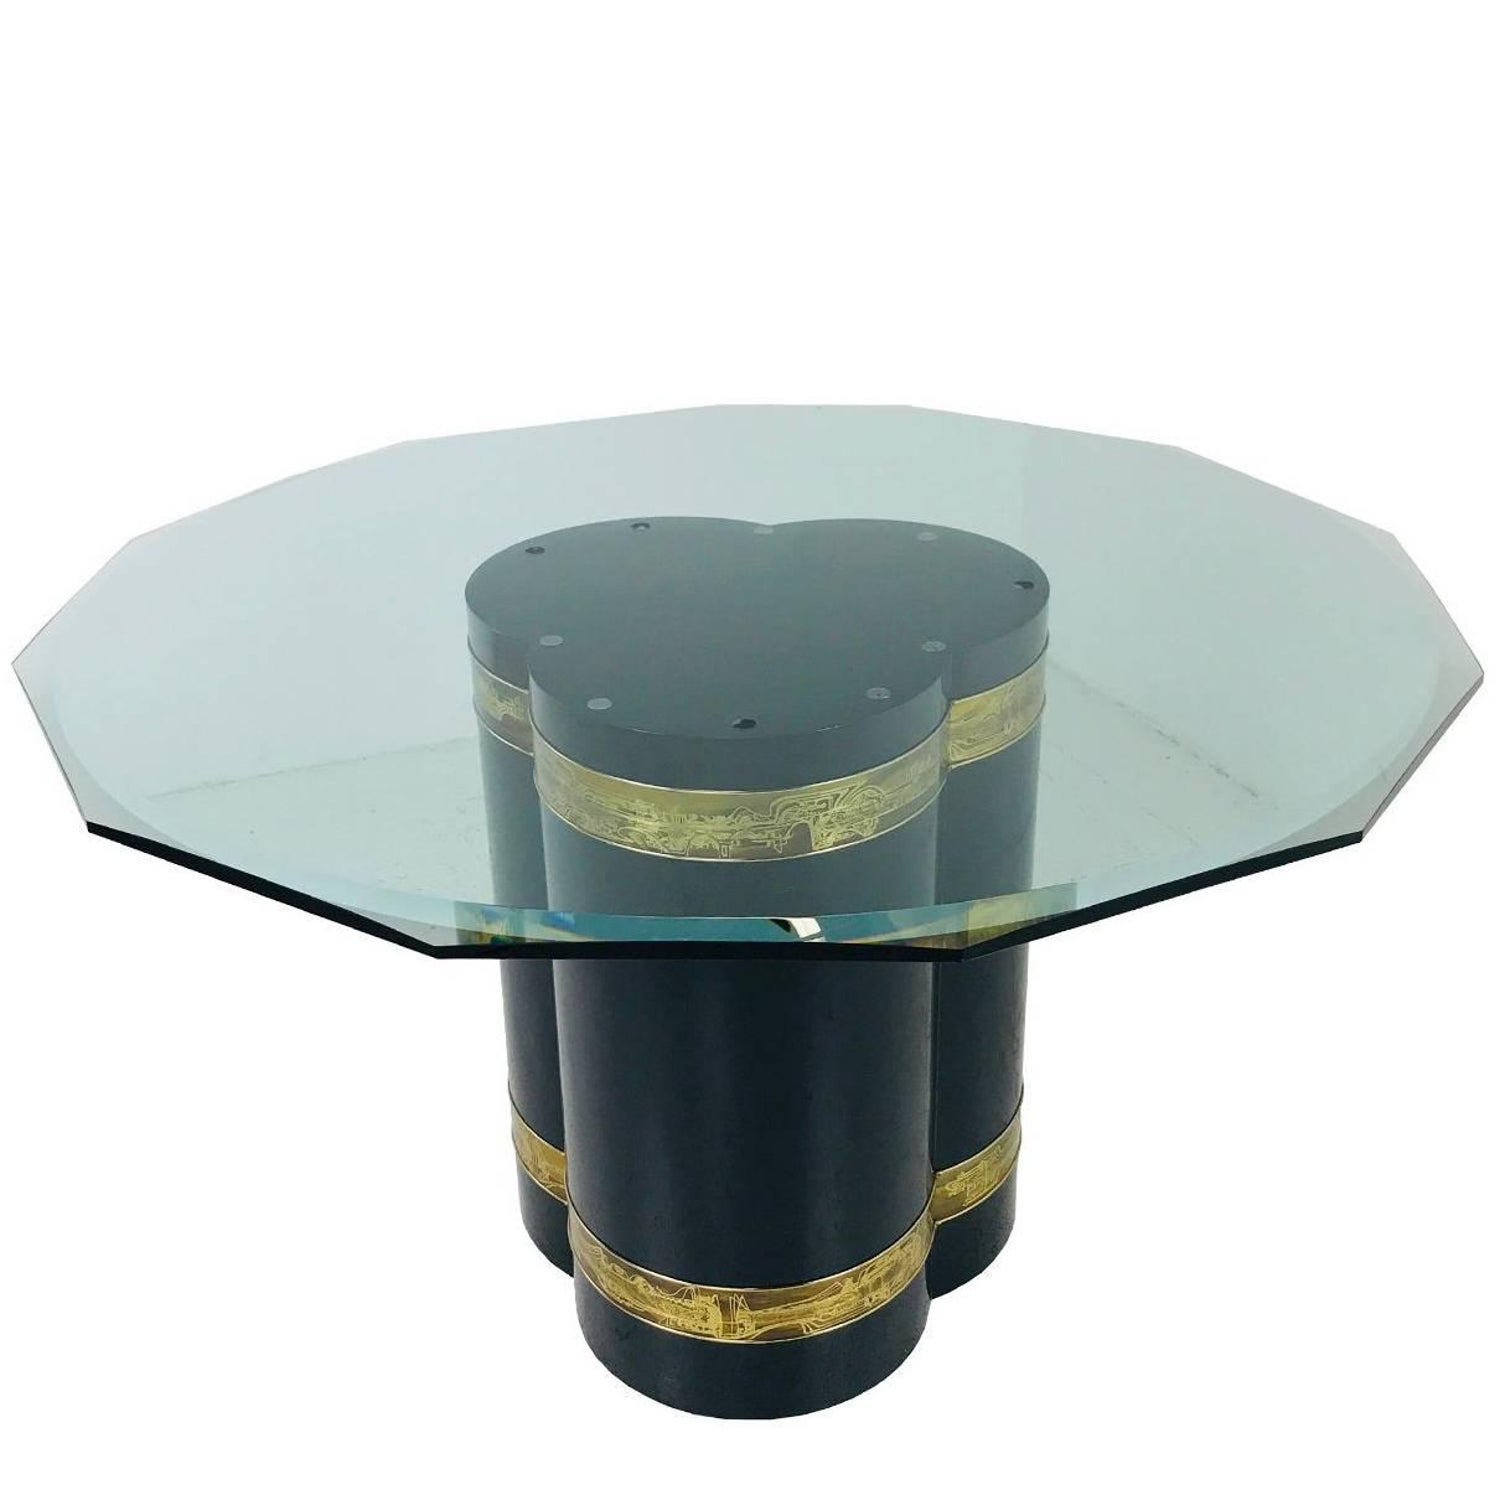 Oval Onyx Pedestal Dining Table For Sale at 1stdibs